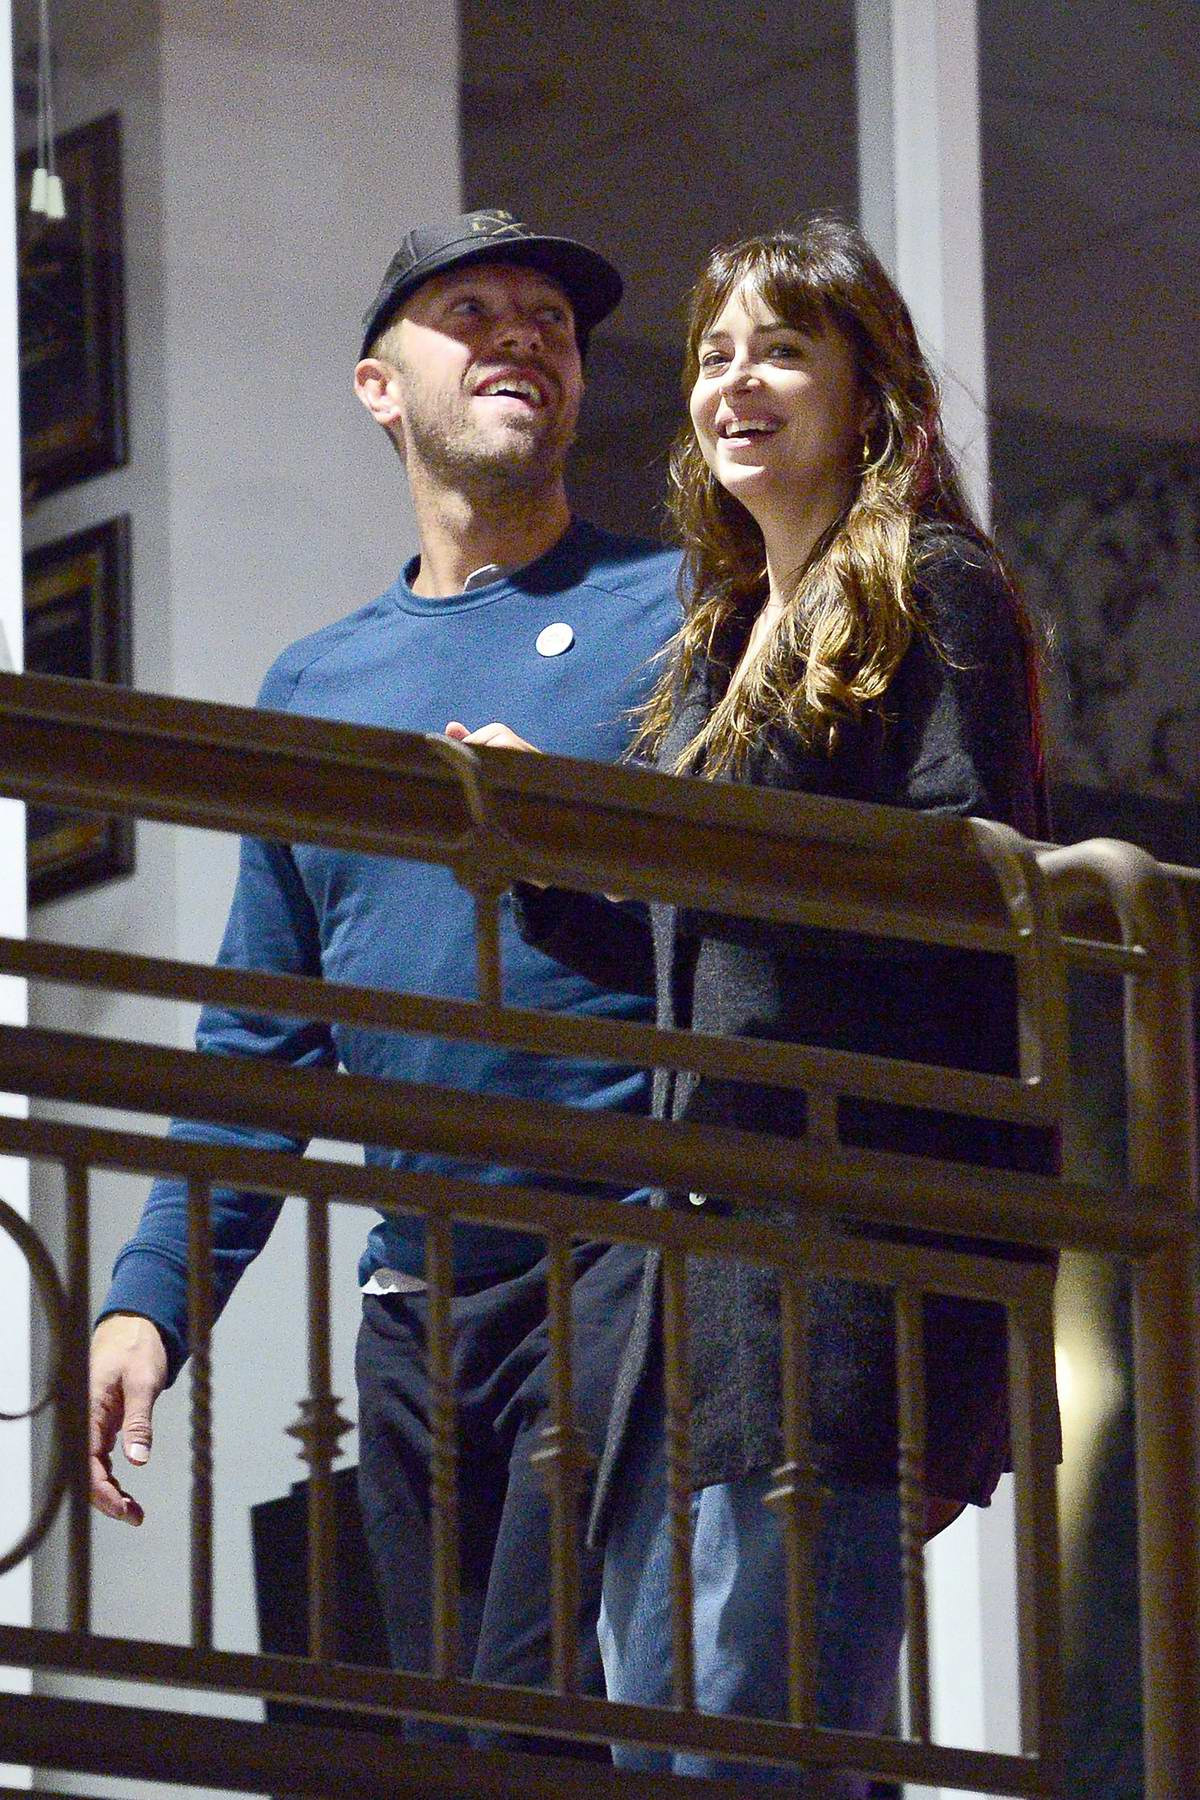 Dakota Johnson and Chris Martin spotted leaving after a romantic dinner at Sushi Park in West Hollywood, Los Angeles